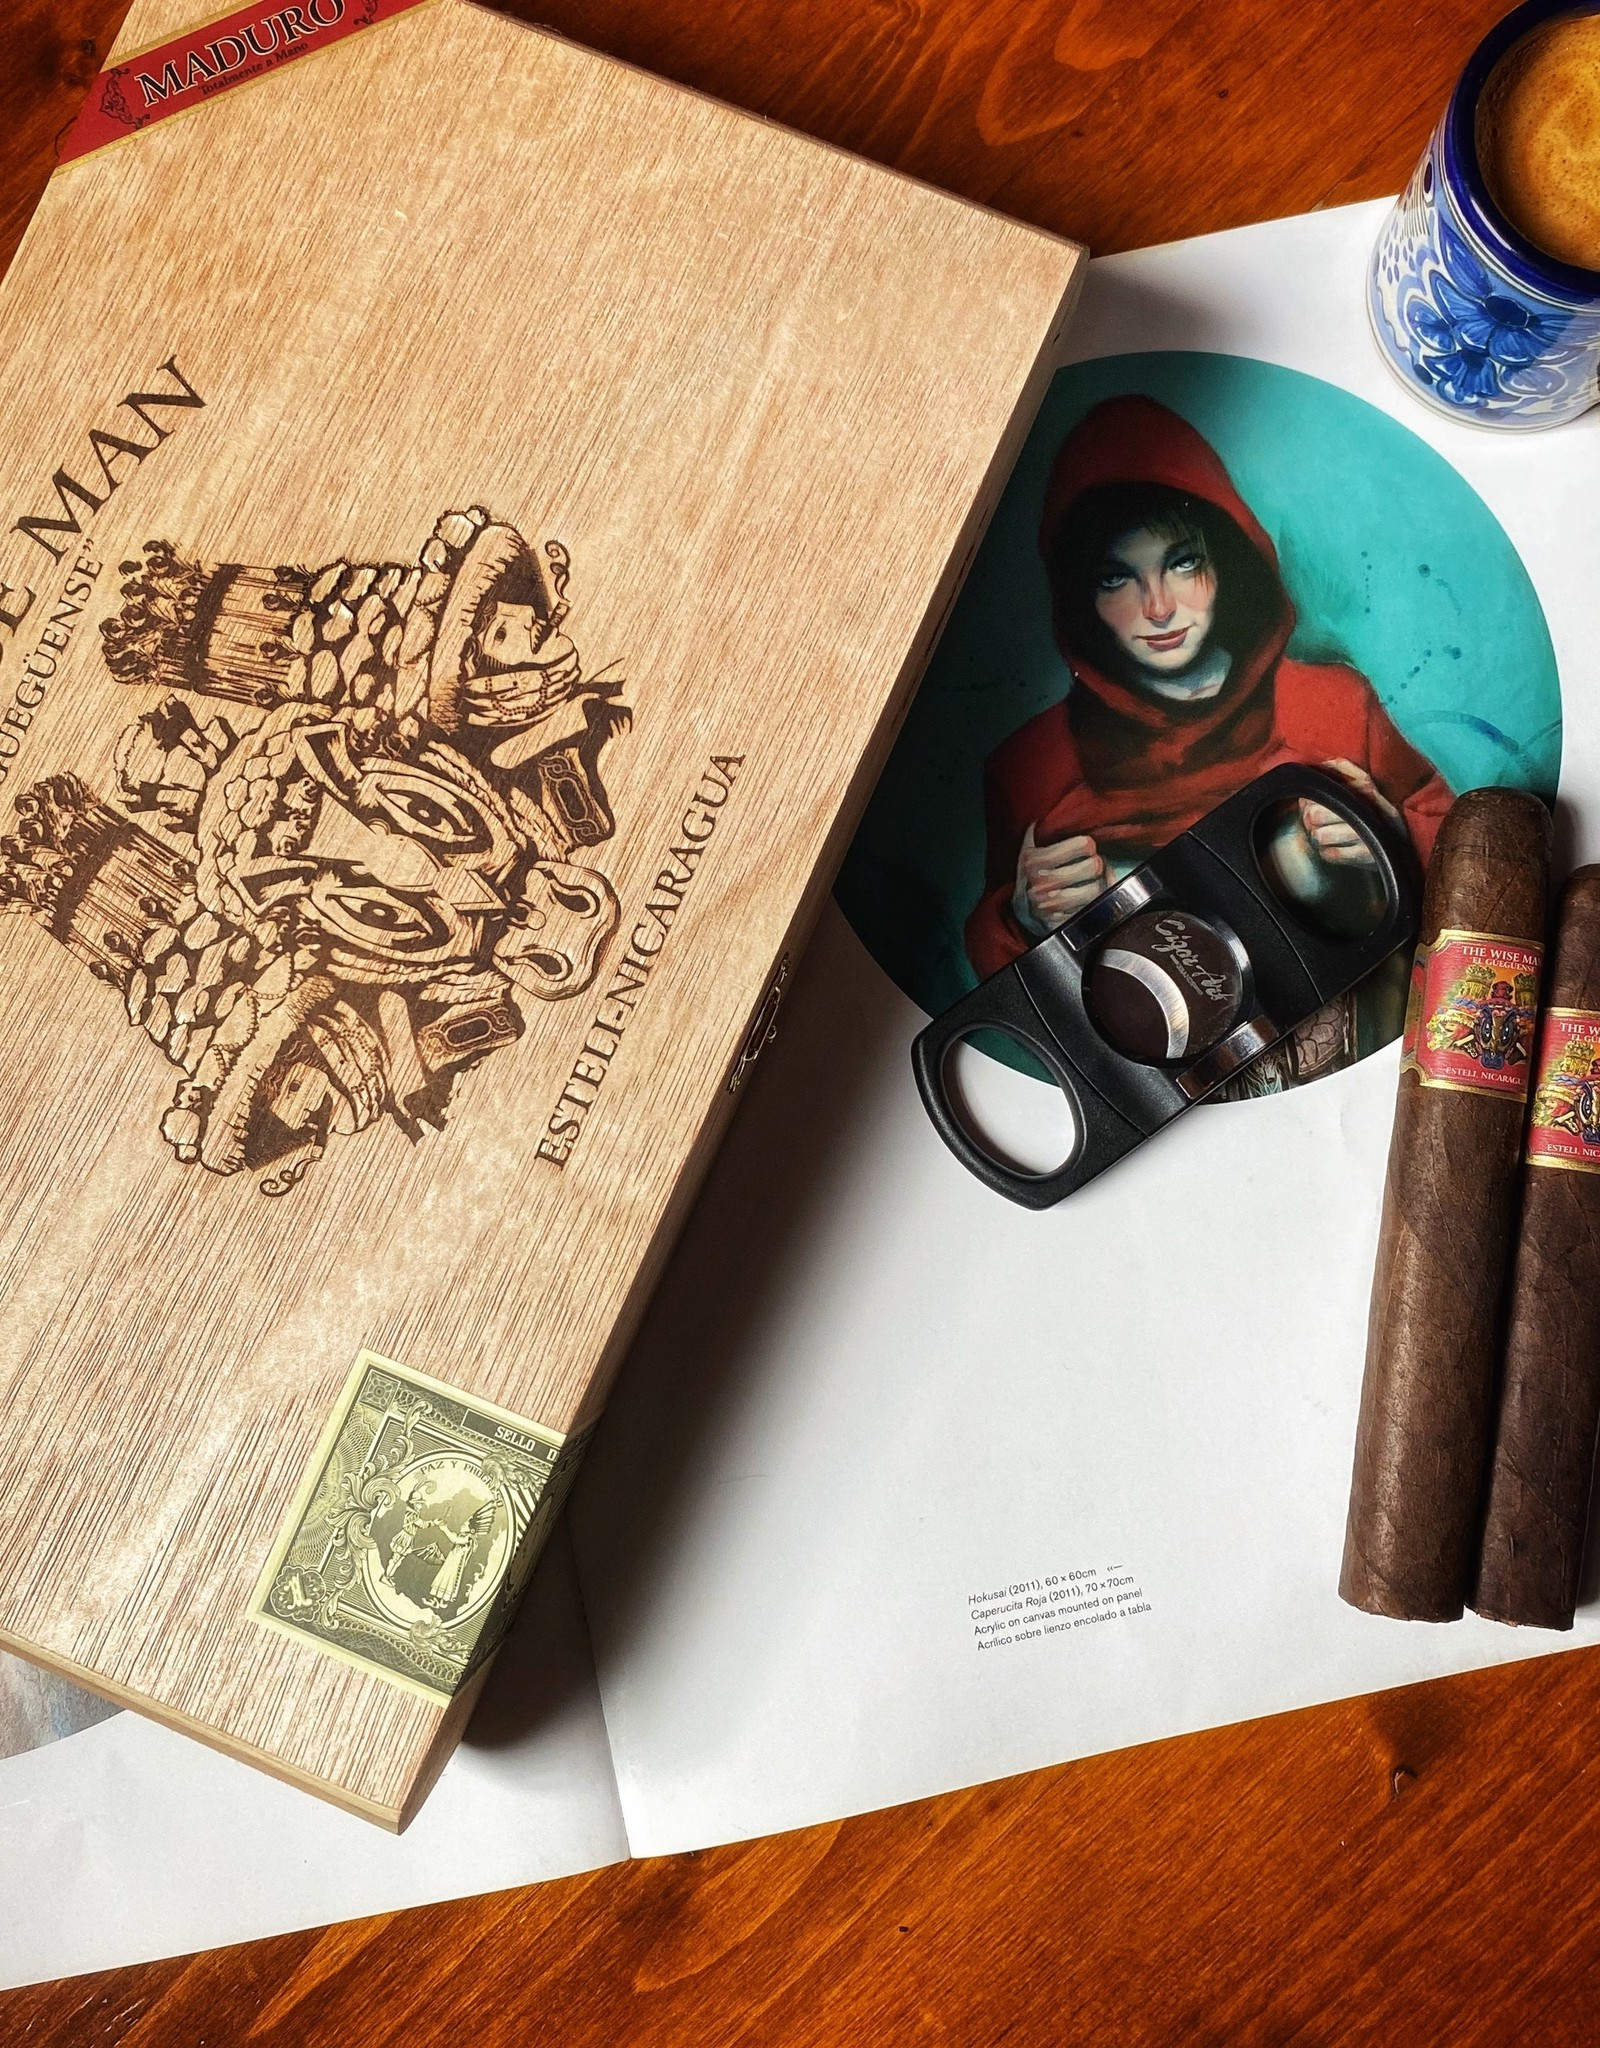 Foundation Foundation Wise Man Maduro Robusto 5.5 x 50 Single